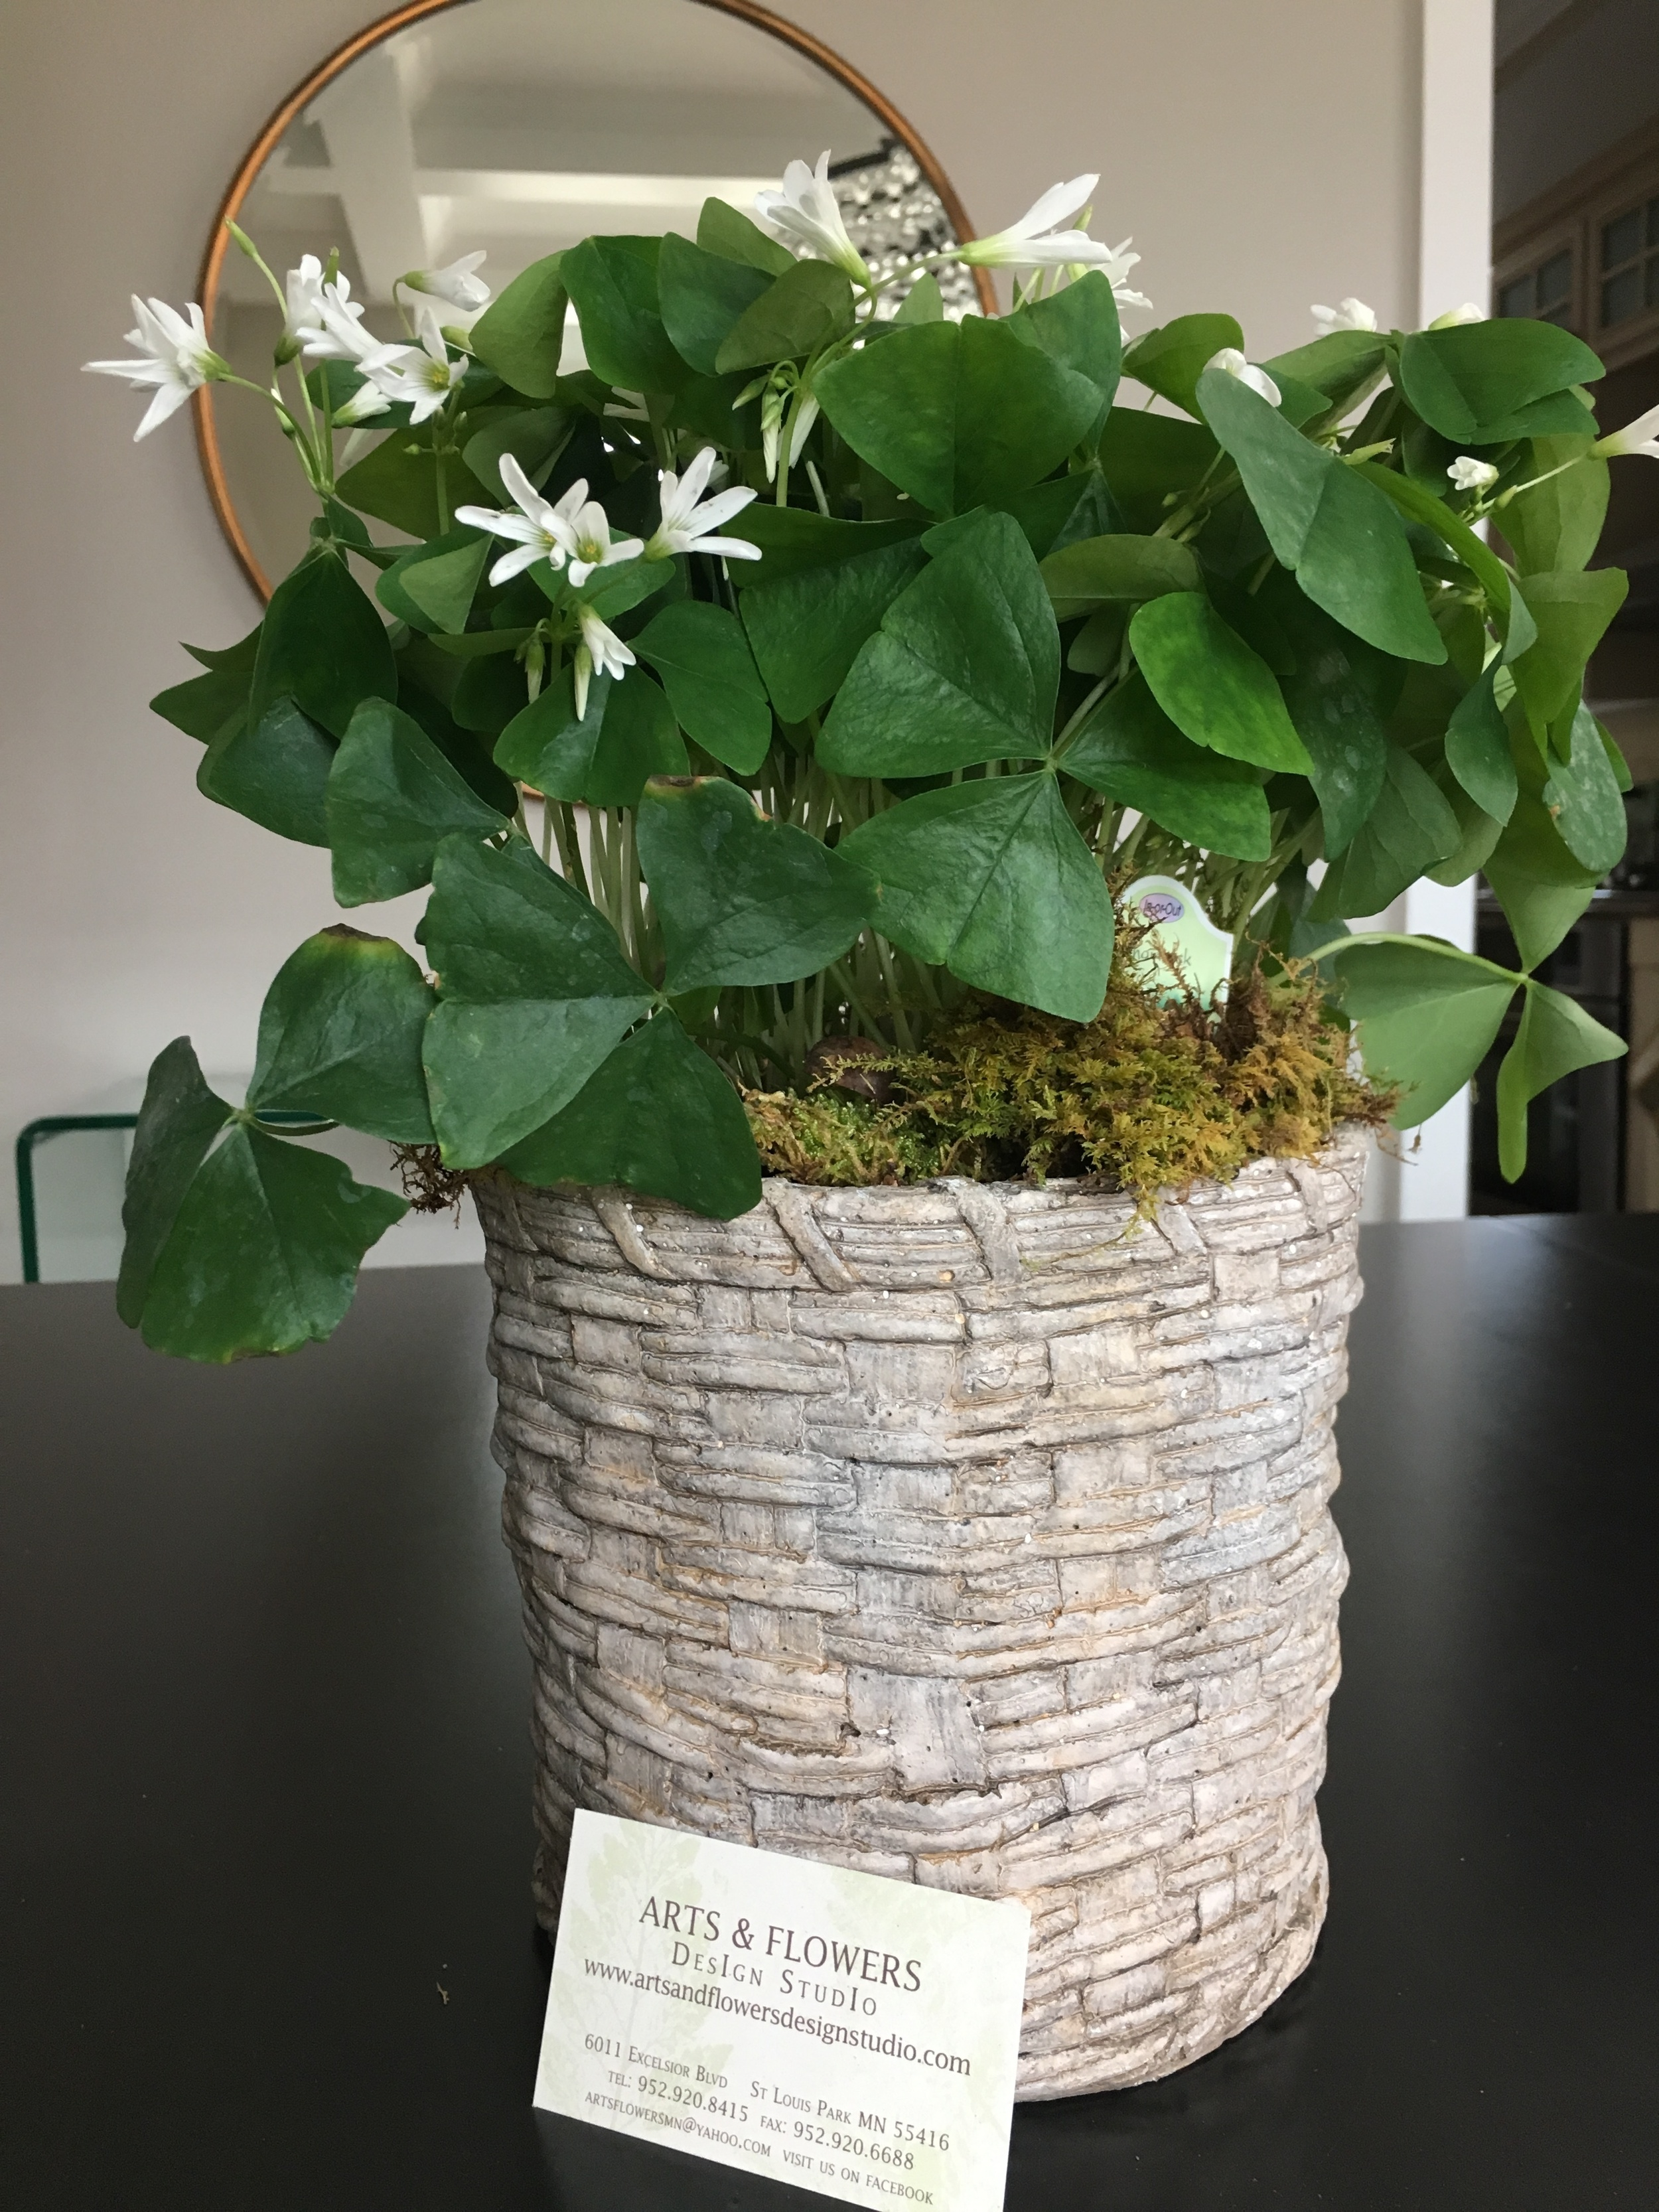 This shamrock plant was $15 and the container which is made of stone was $24 from Arts & Flowers.